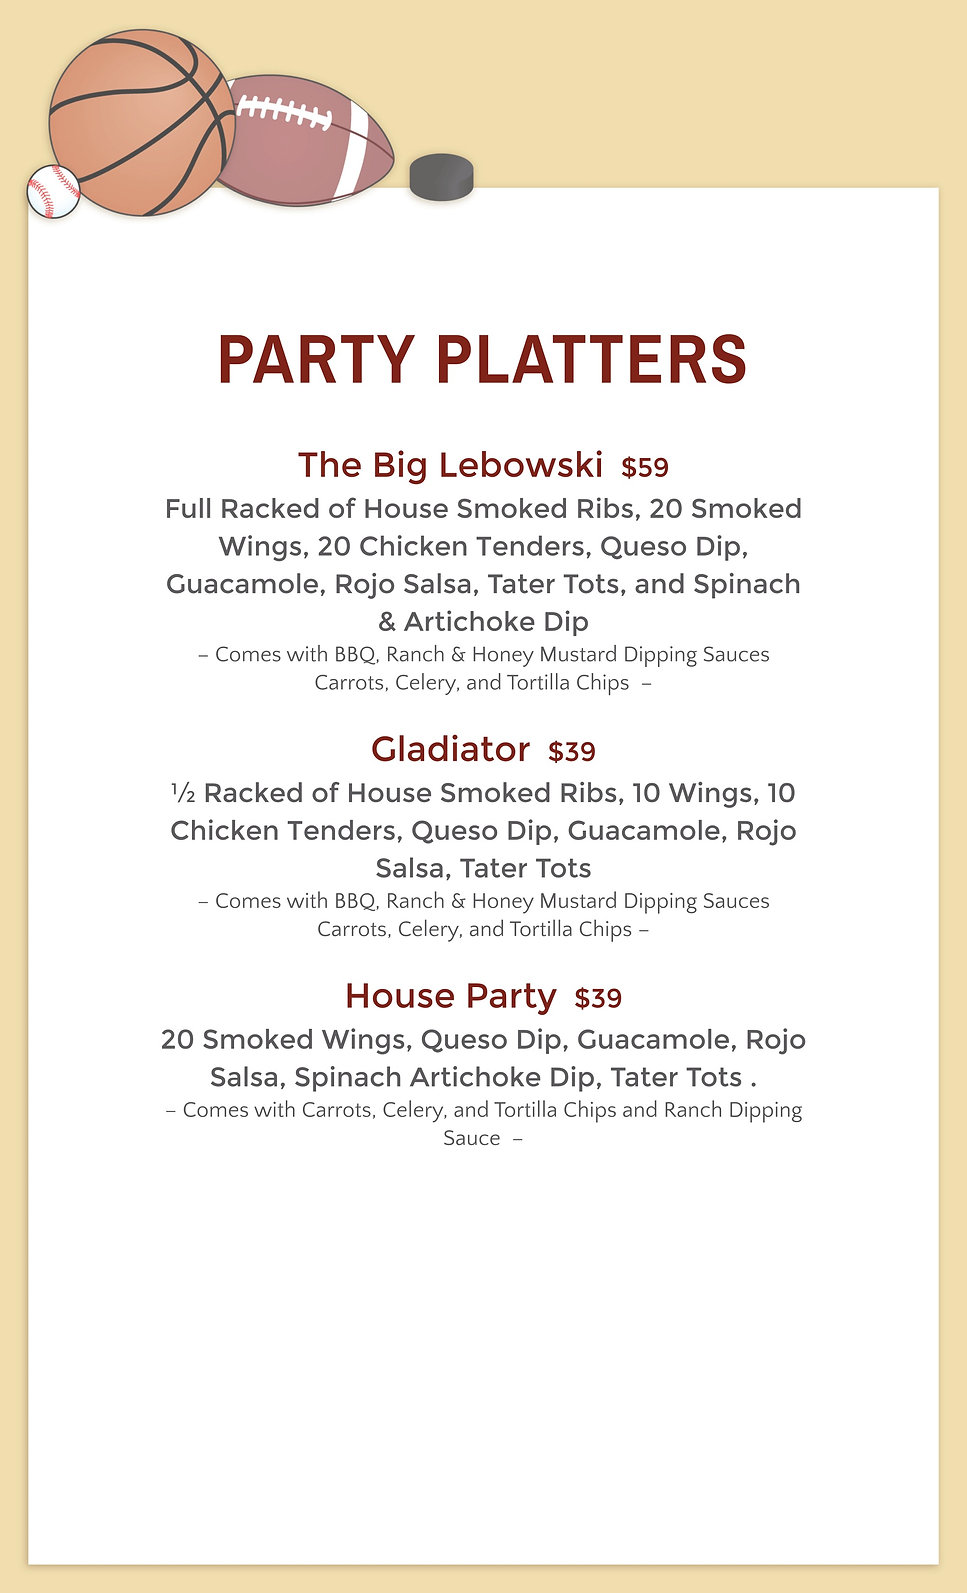 Party Platters 10-23-20 _page-1.jpg